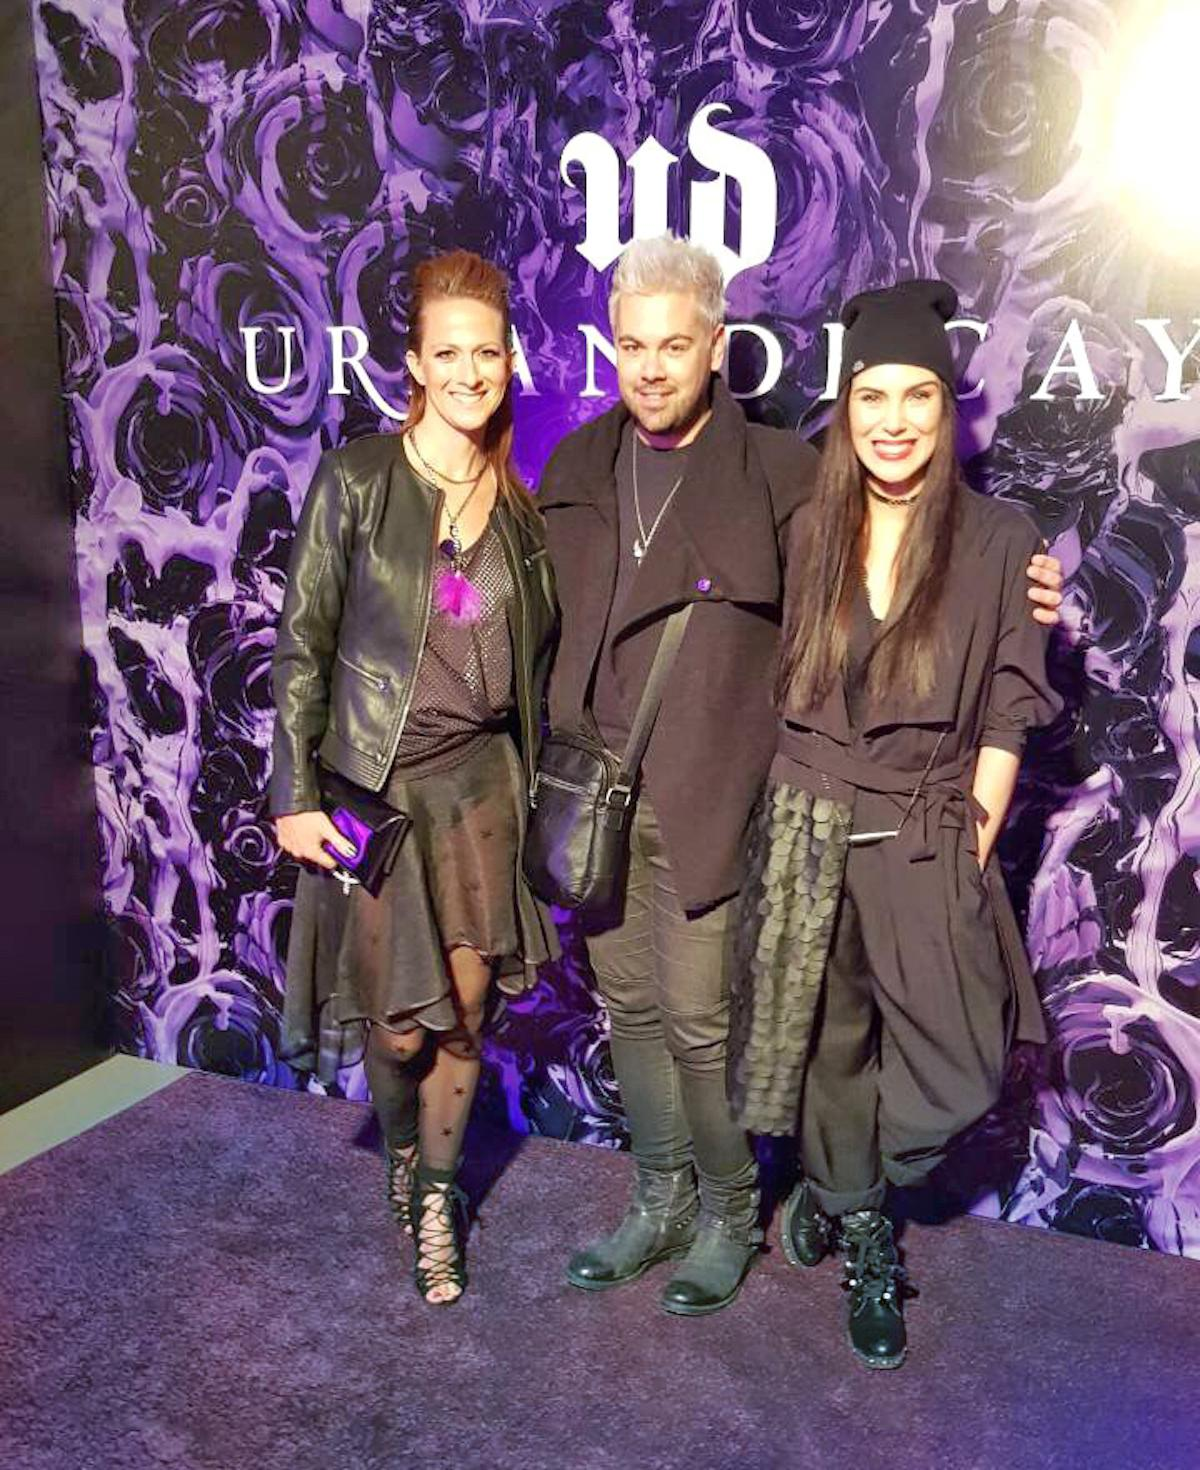 Urban Decay Party Zagreb